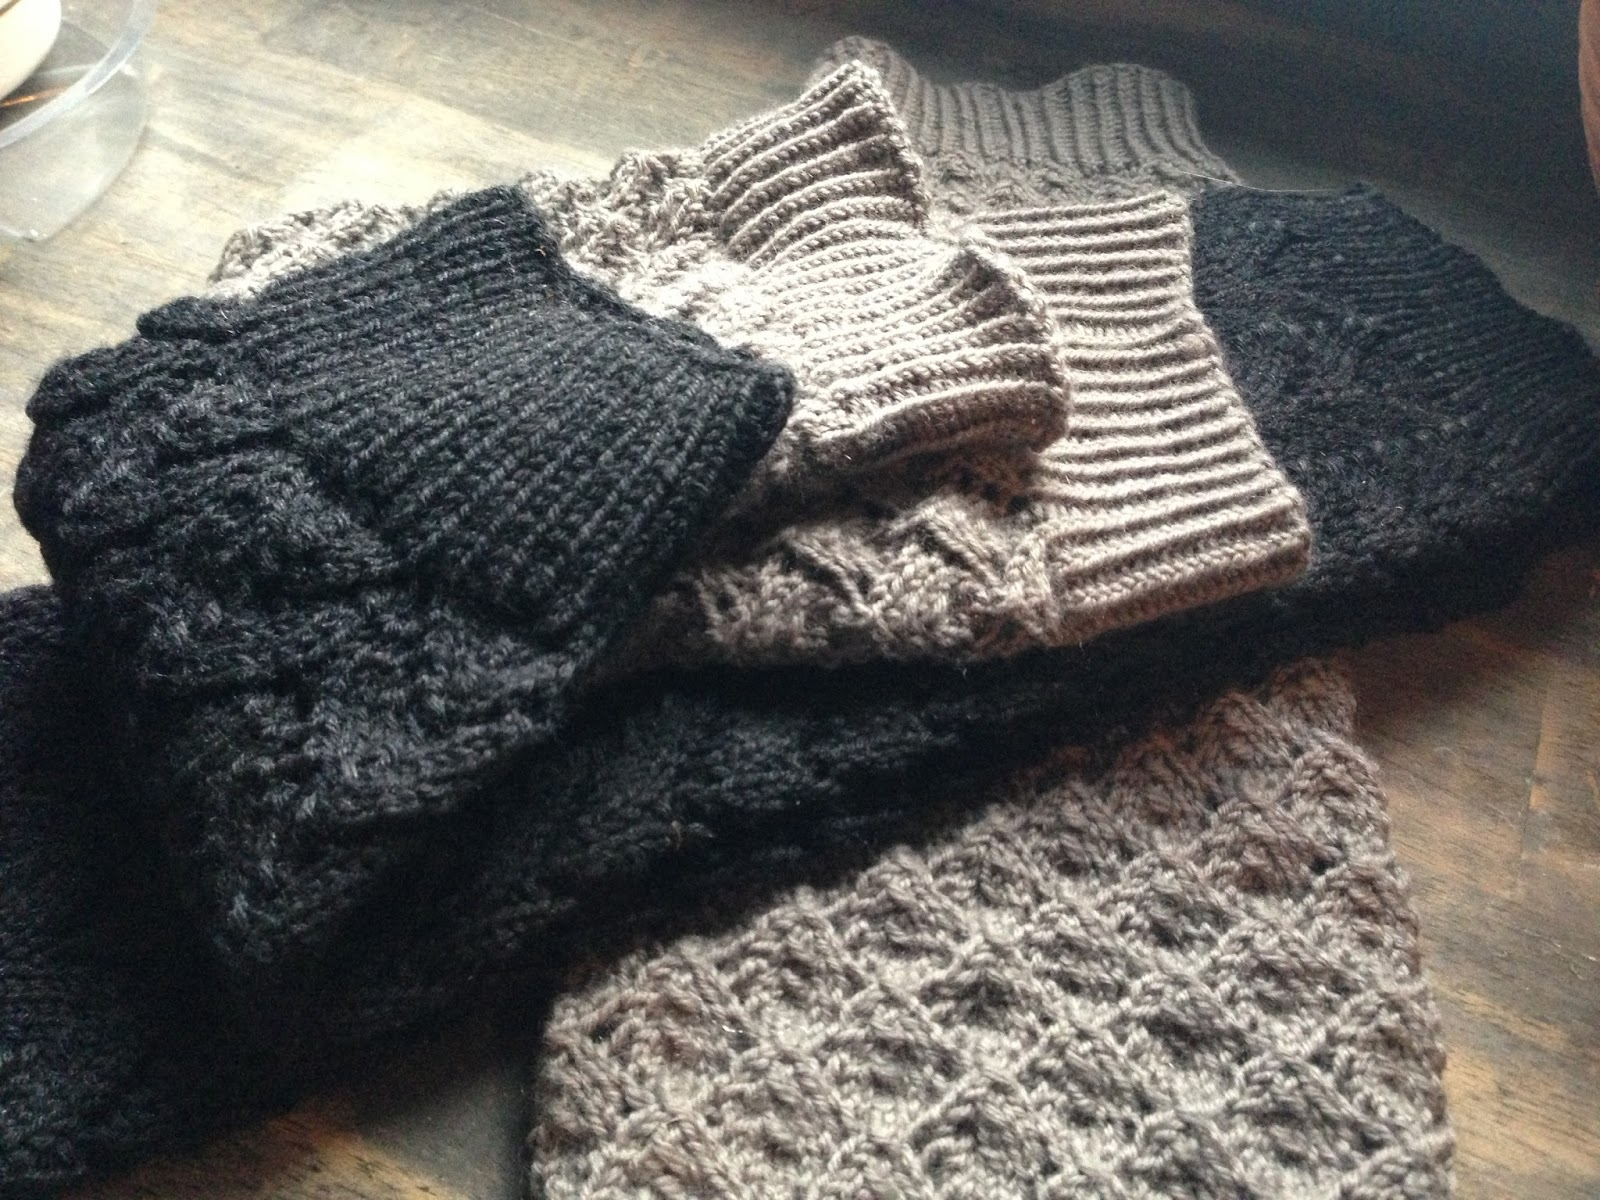 Autumn Hill Llamas & Fiber: Knitting Pattern #2: Horseshoe Lace Legwarmers